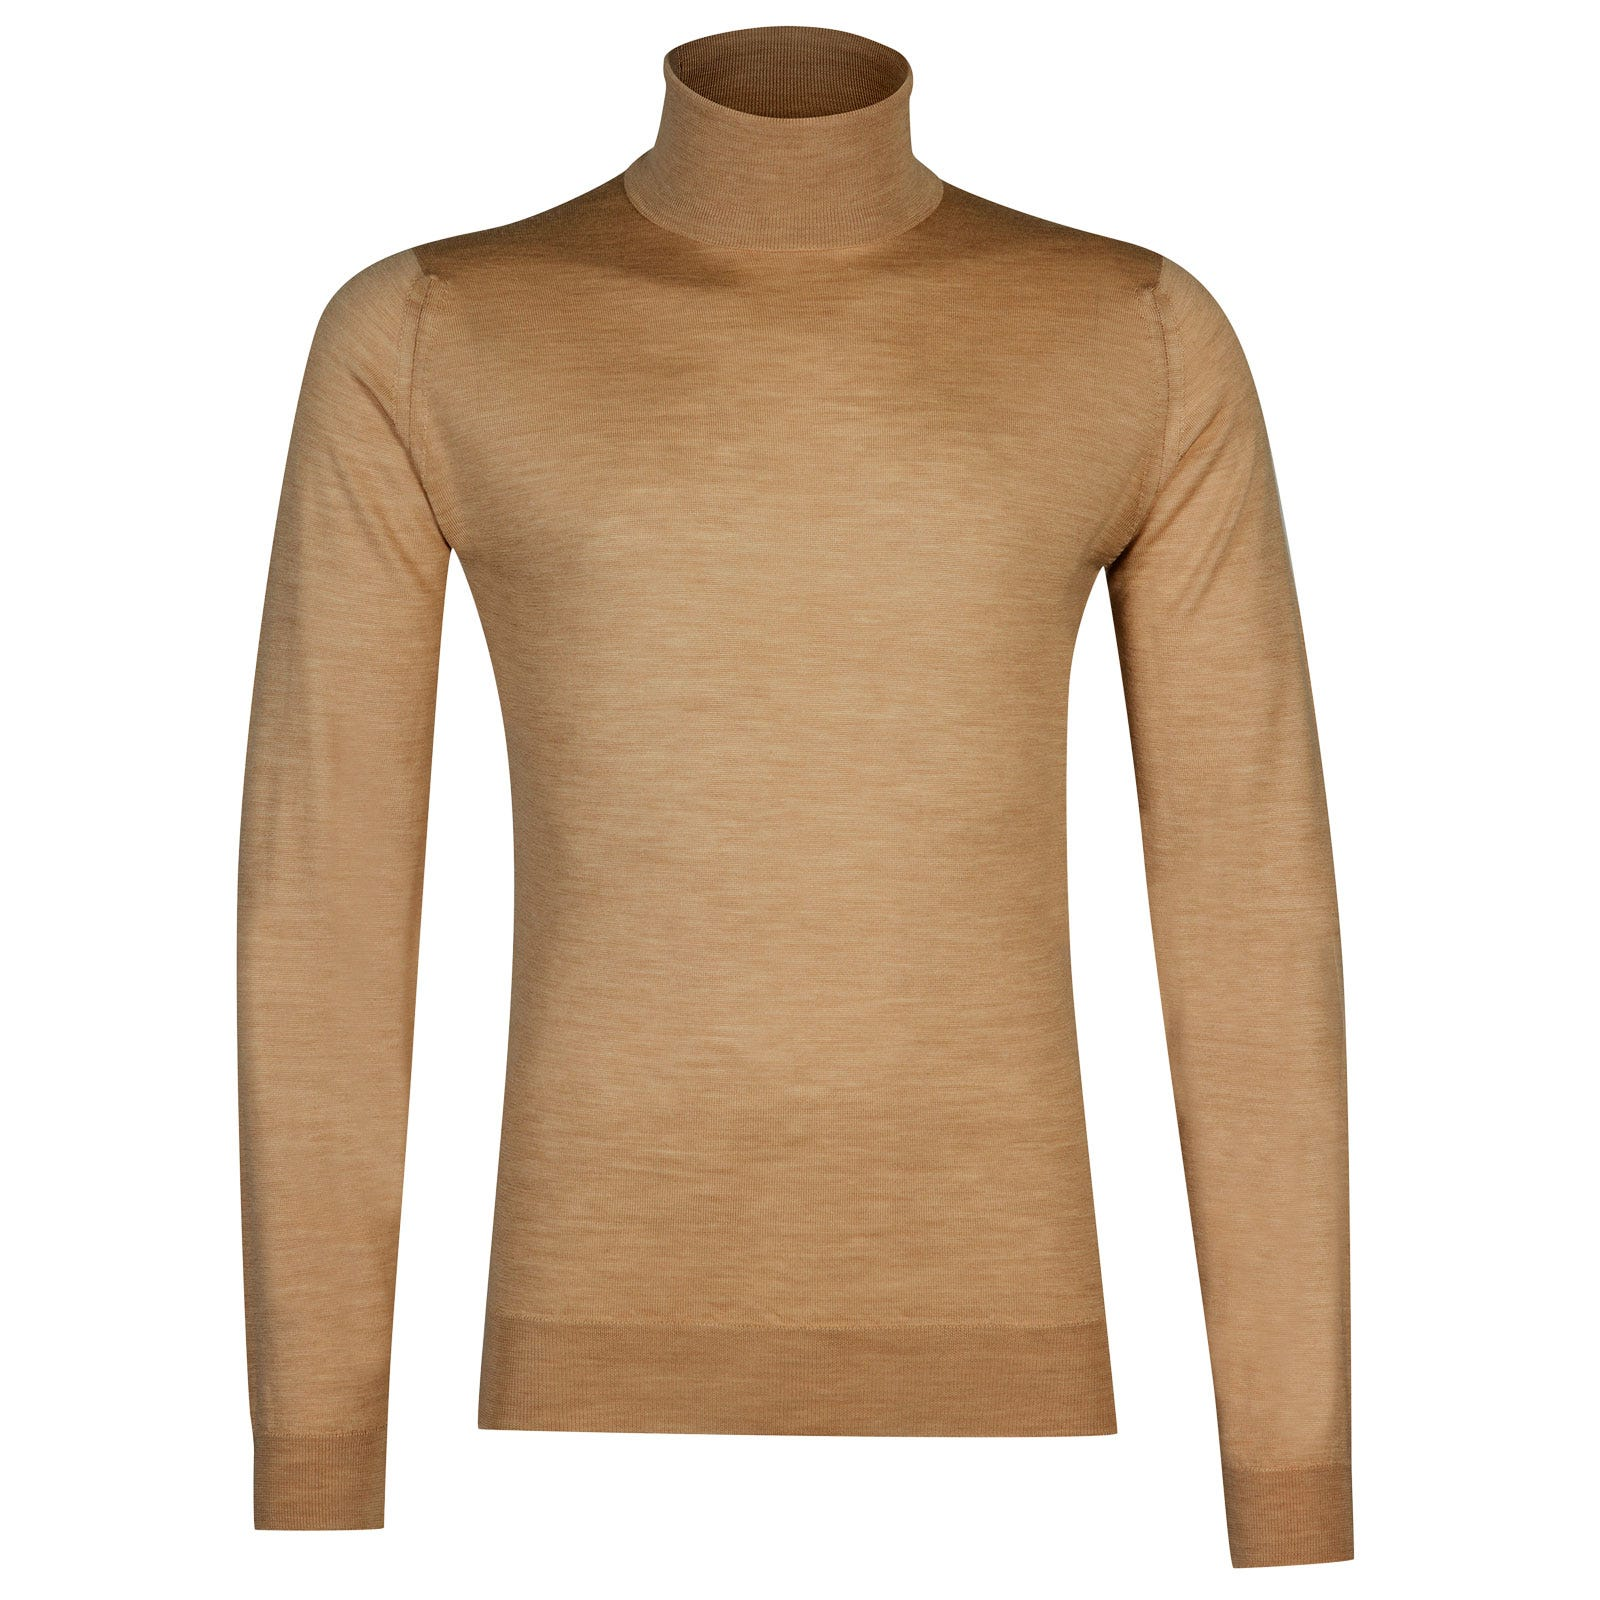 John Smedley arlington Merino Wool and Cashmere Pullover in Dark